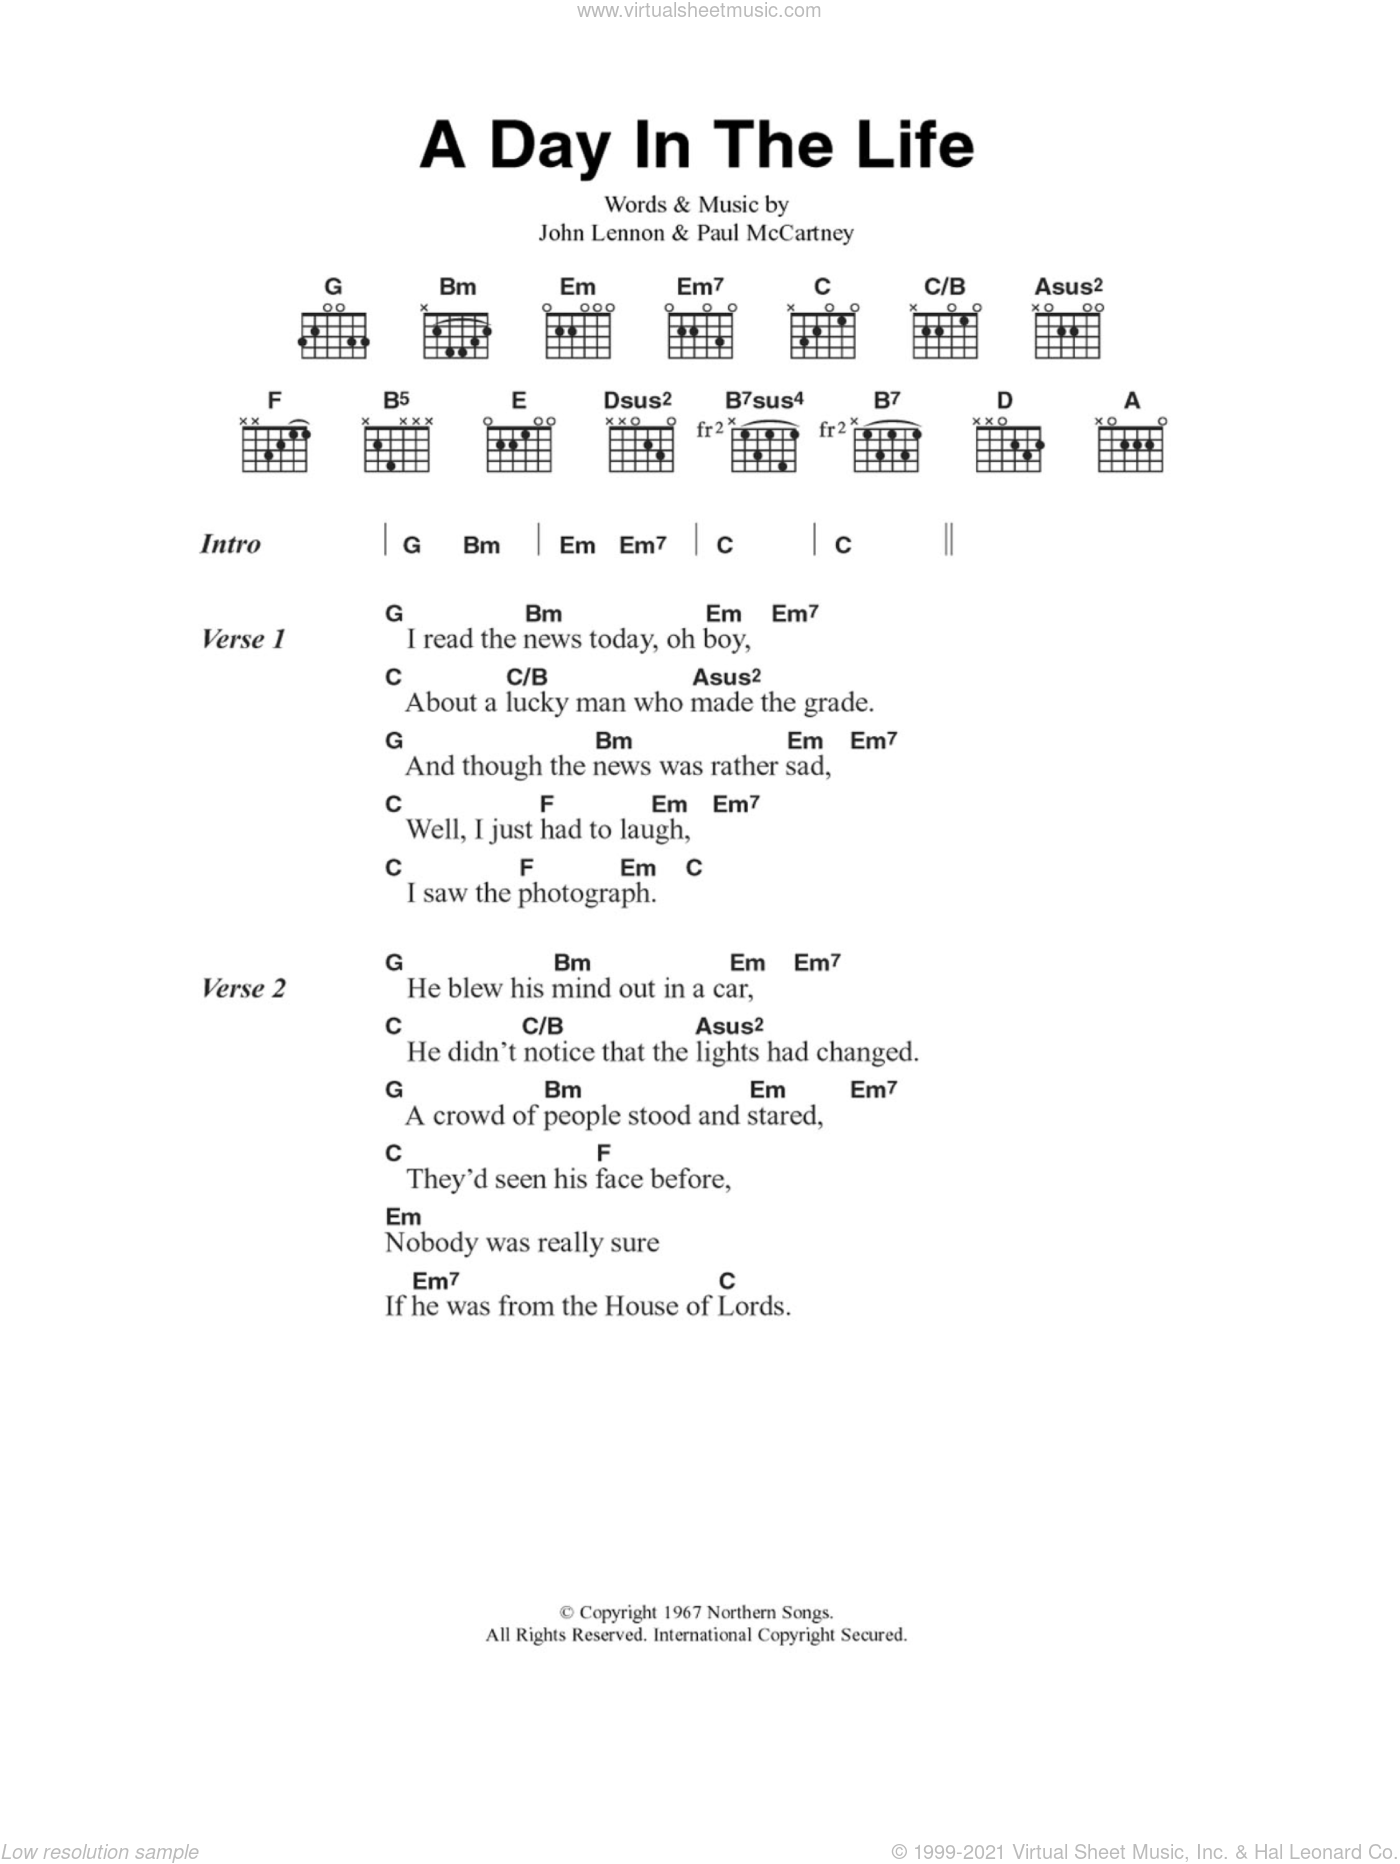 A Day In The Life sheet music for guitar (chords) by The Beatles, John Lennon and Paul McCartney, intermediate skill level